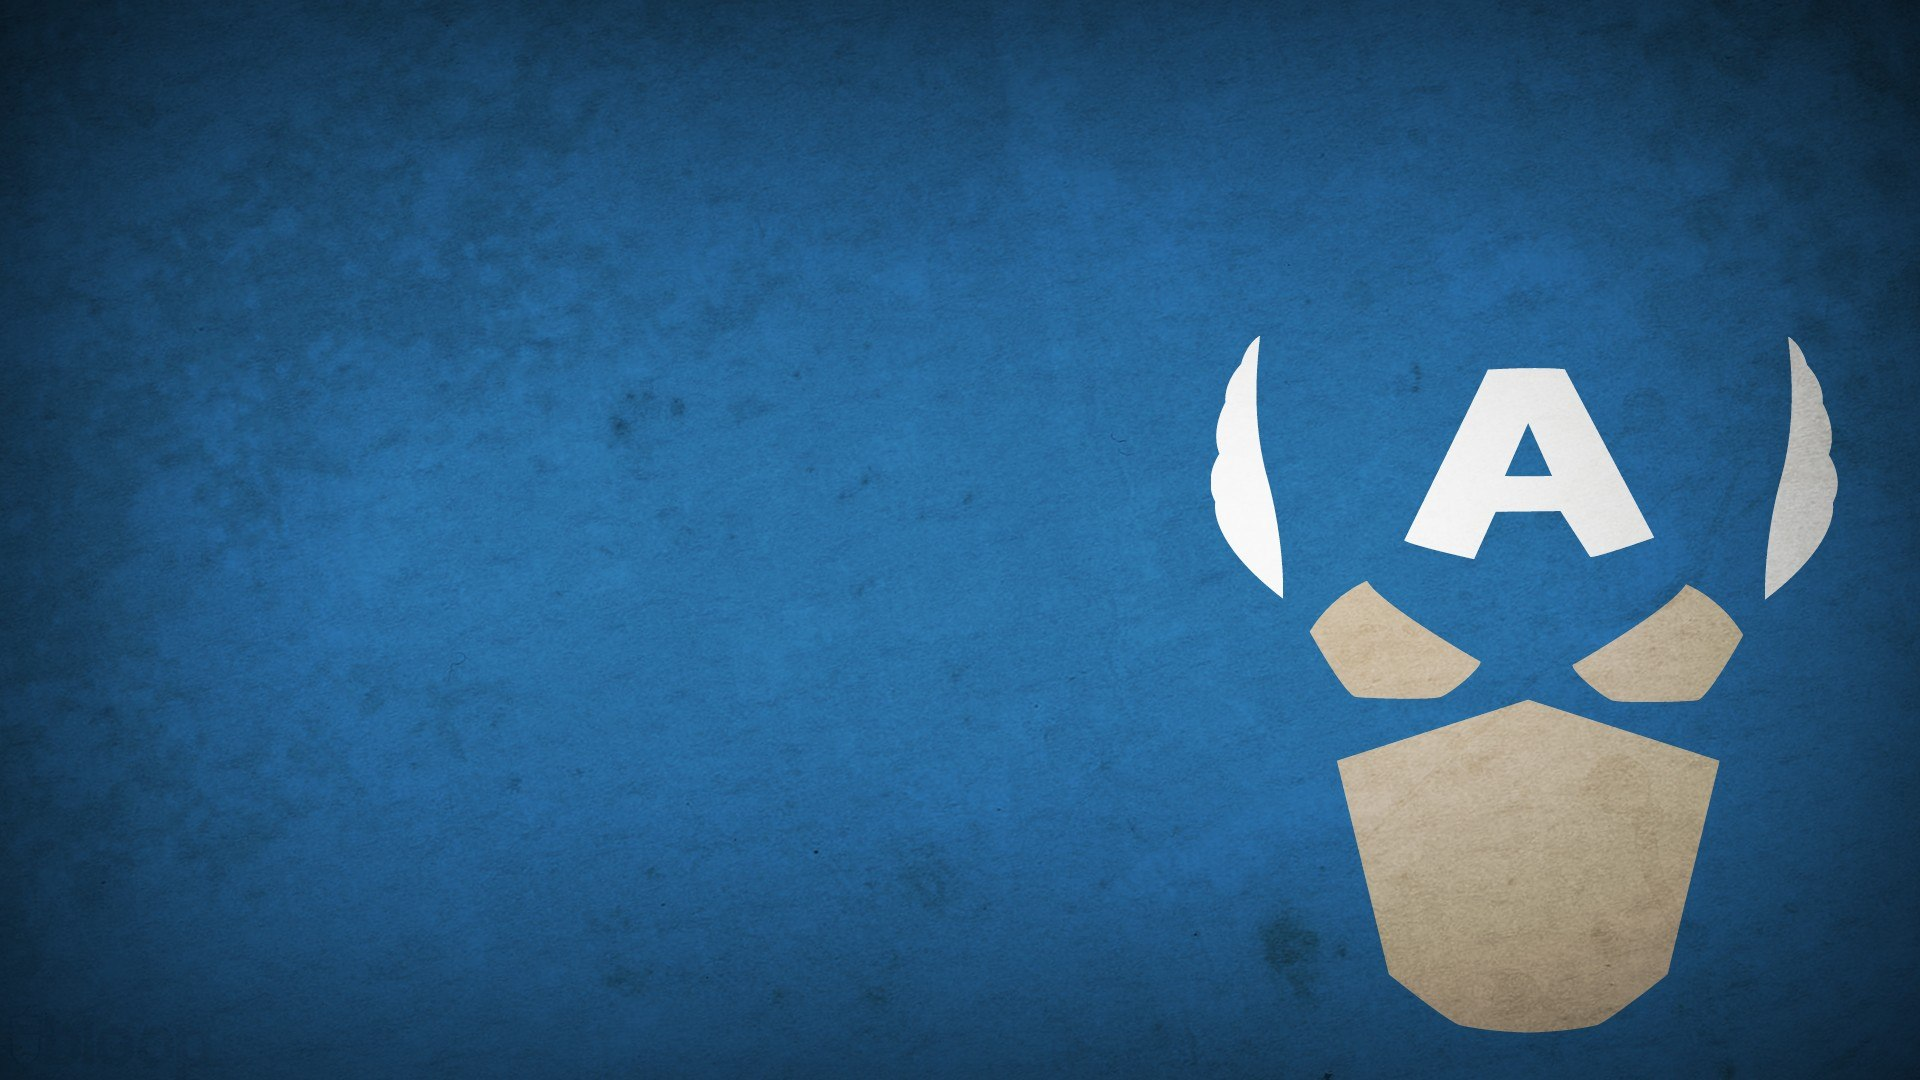 captain america wallpaper - photo #4